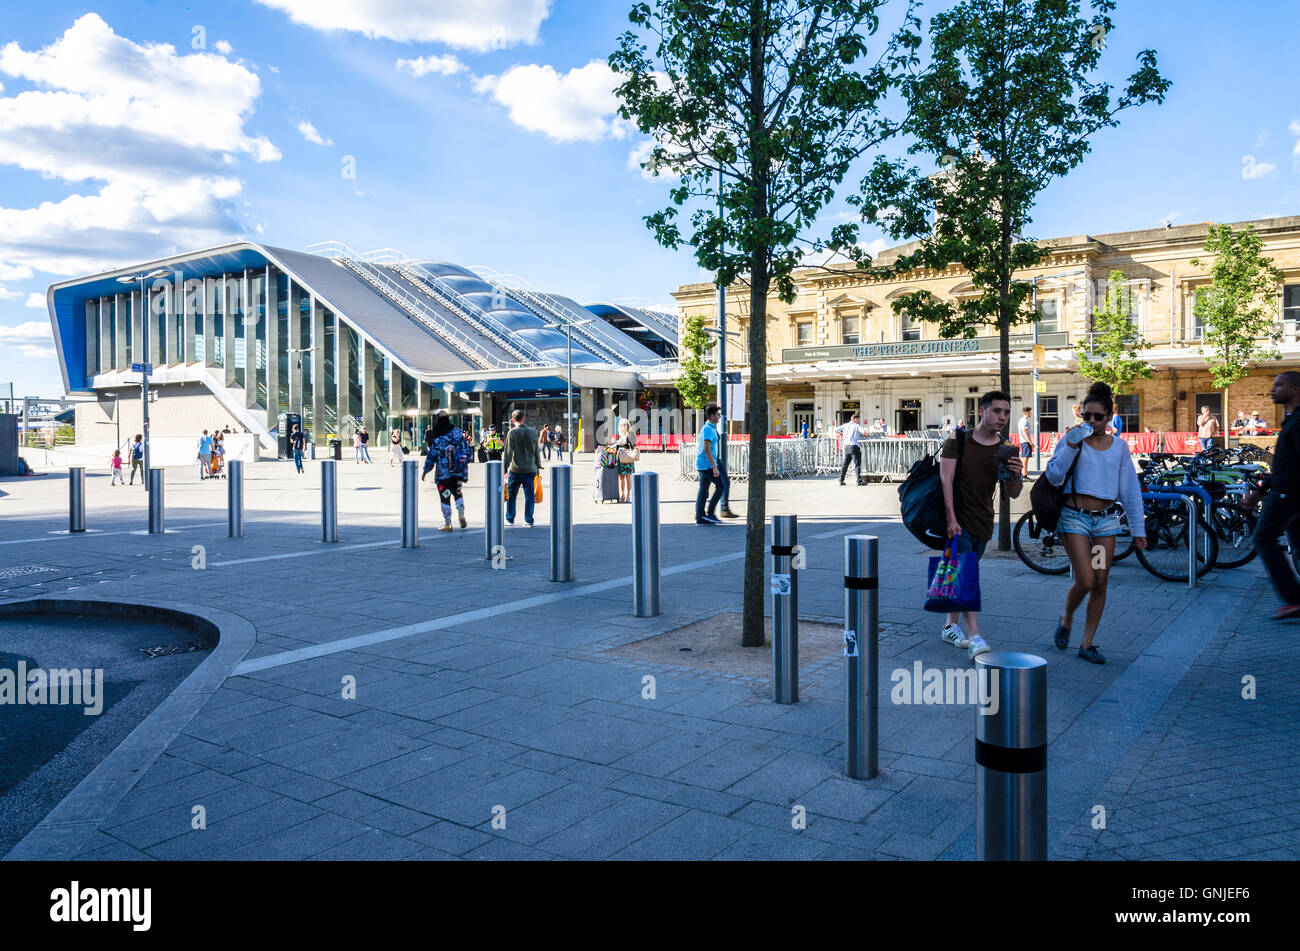 A view of Reading railway station. Stock Photo